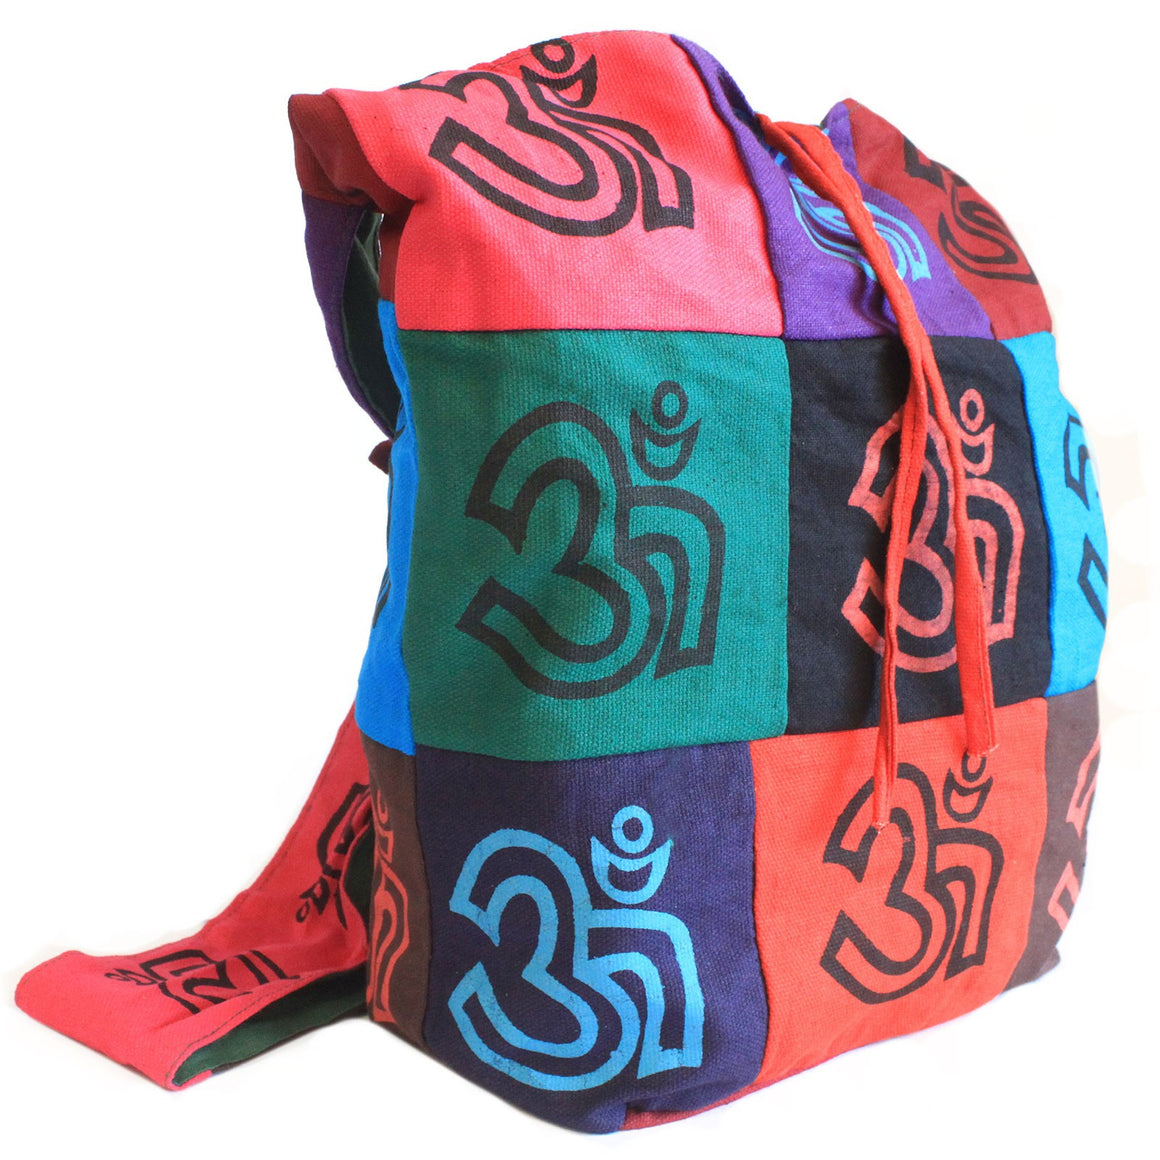 Bags, Cotton Patch Sling Bags, Ethnic Bags, Gift, India, Indian, OM